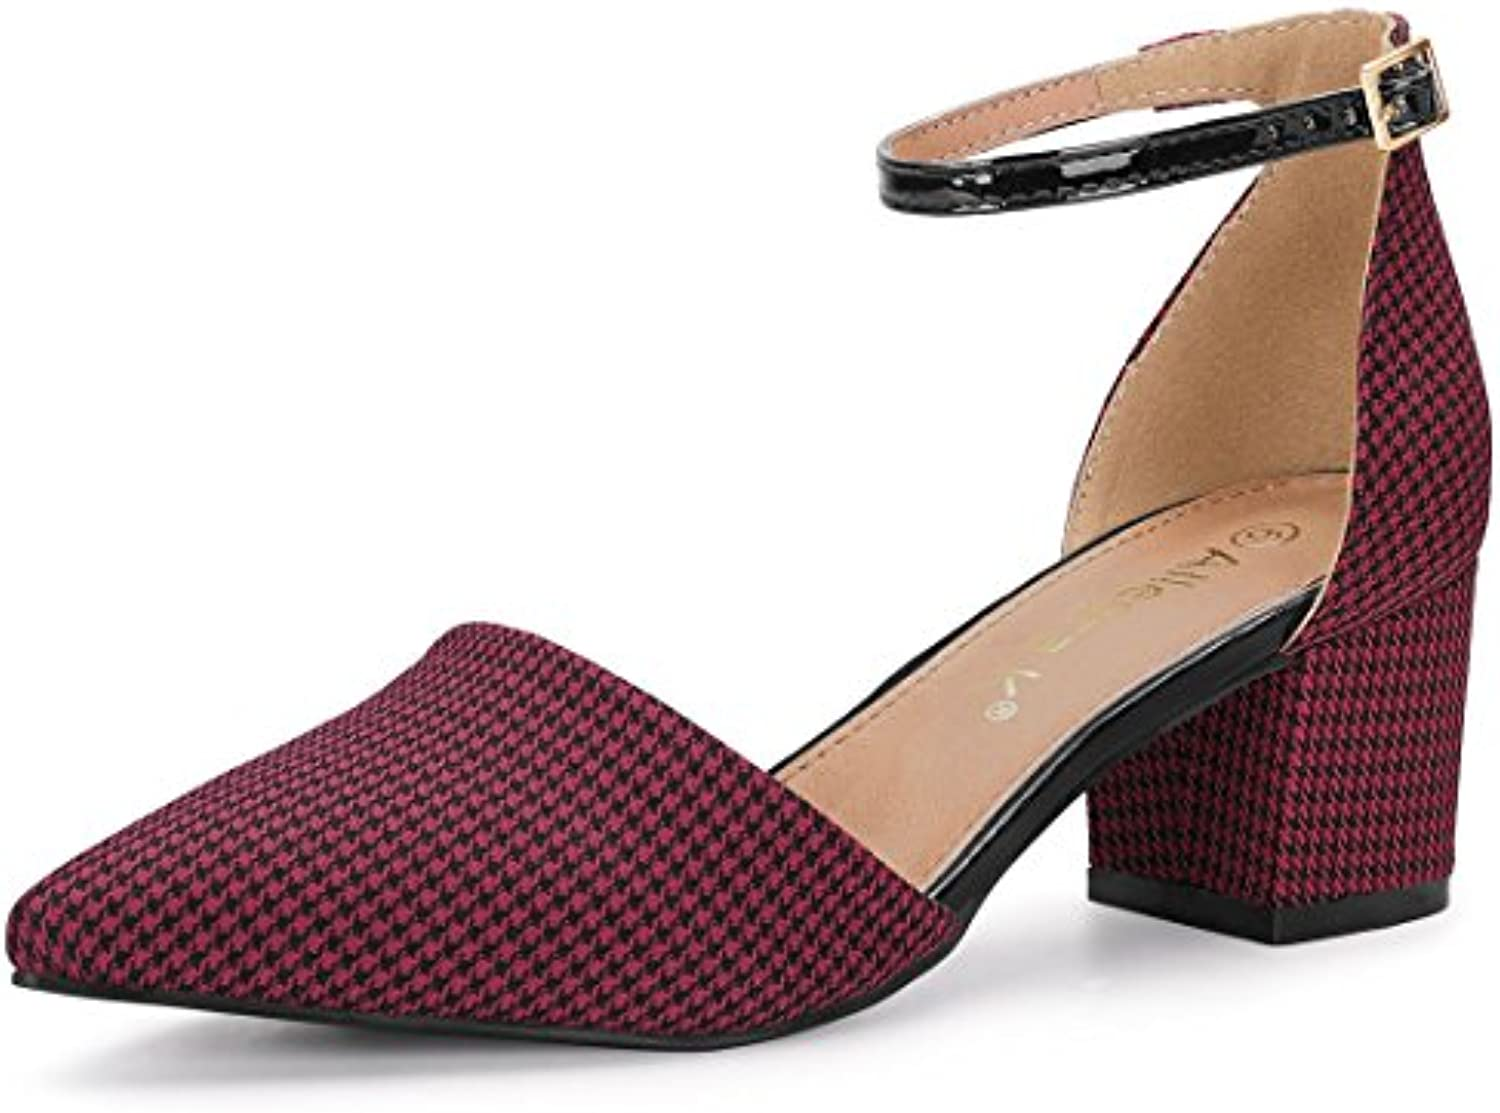 a80e253259d Allegra Block K 30294 Women s Houndstooth Block Heel Ankle Strap Pumps Pumps  B07DCK21G1 Parent 6a9baf8